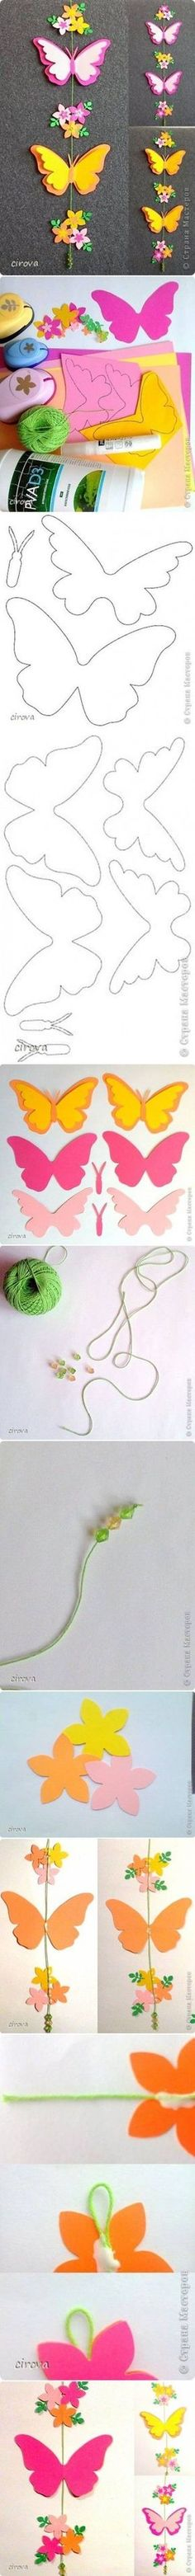 Ideas Origami Papillon Guirlande For 2019 Hobbies And Crafts, Diy And Crafts, Crafts For Kids, Arts And Crafts, Diy Paper, Paper Crafting, Paper Art, Butterfly Mobile, Butterfly Crafts